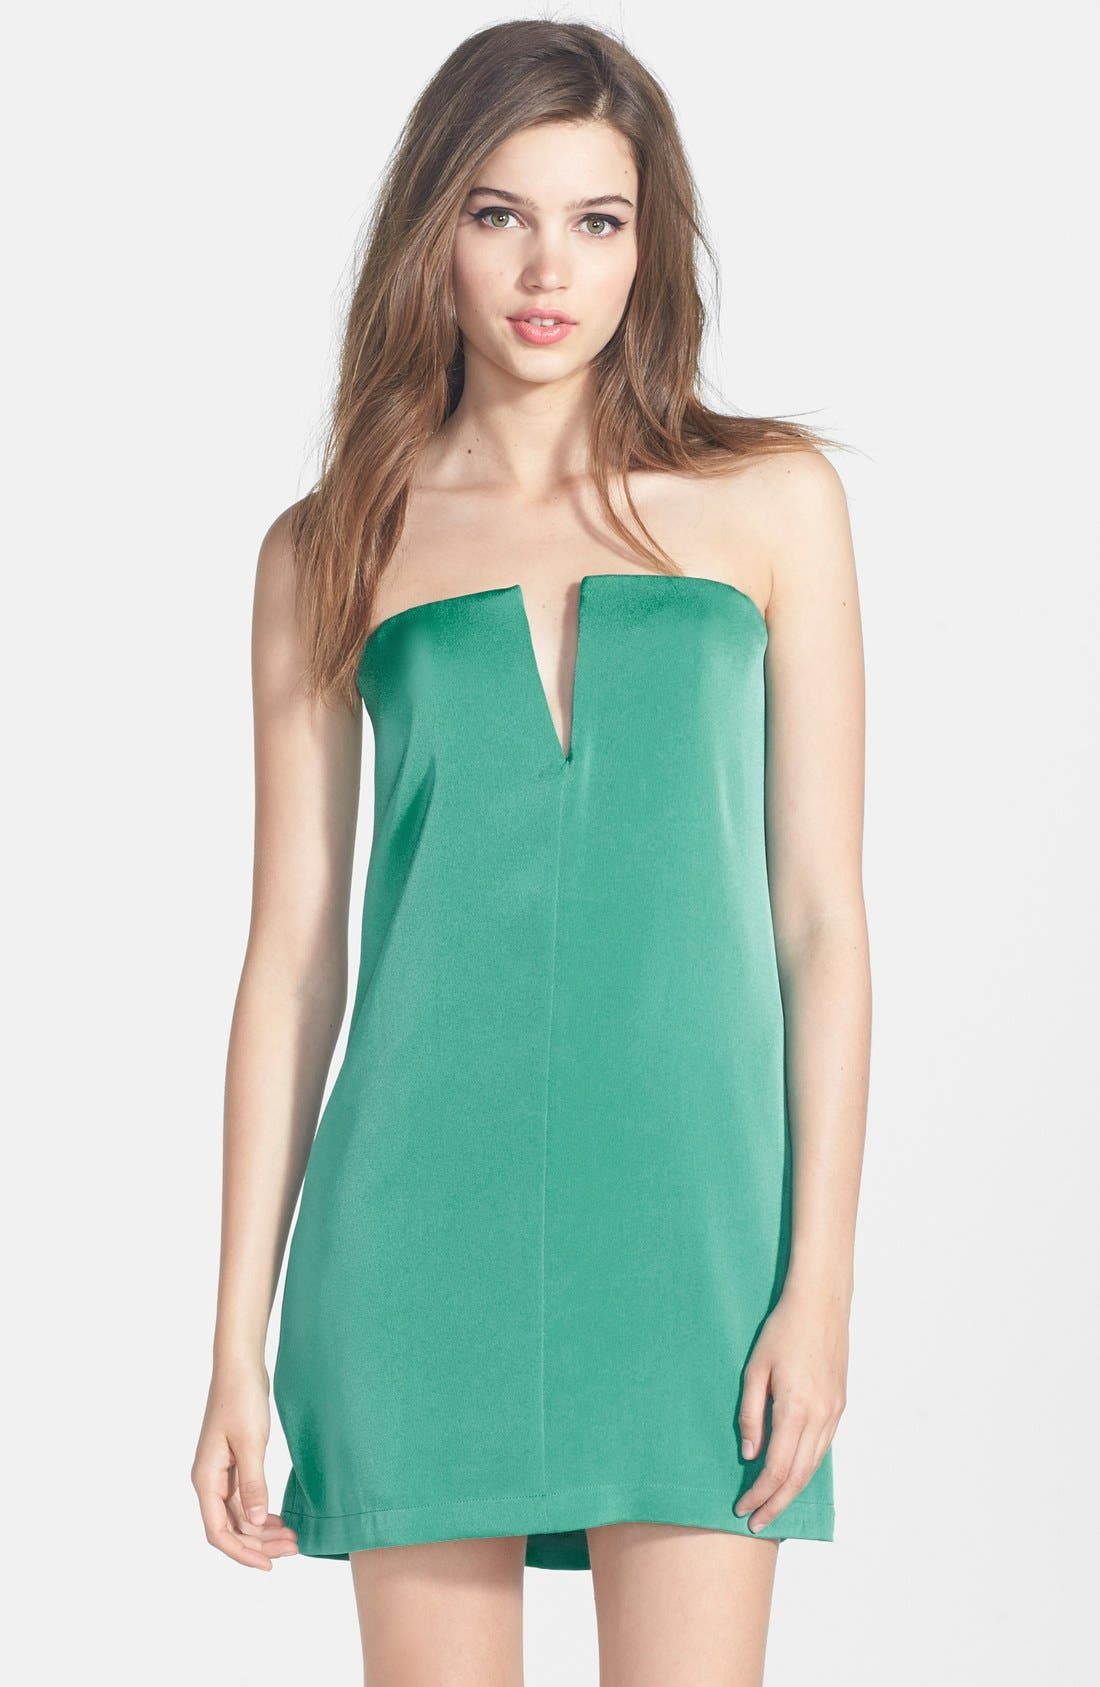 Alternate Image 1 Selected - BCBGMAXAZRIA 'Nahara' Strapless Crêpe de Chine Dress